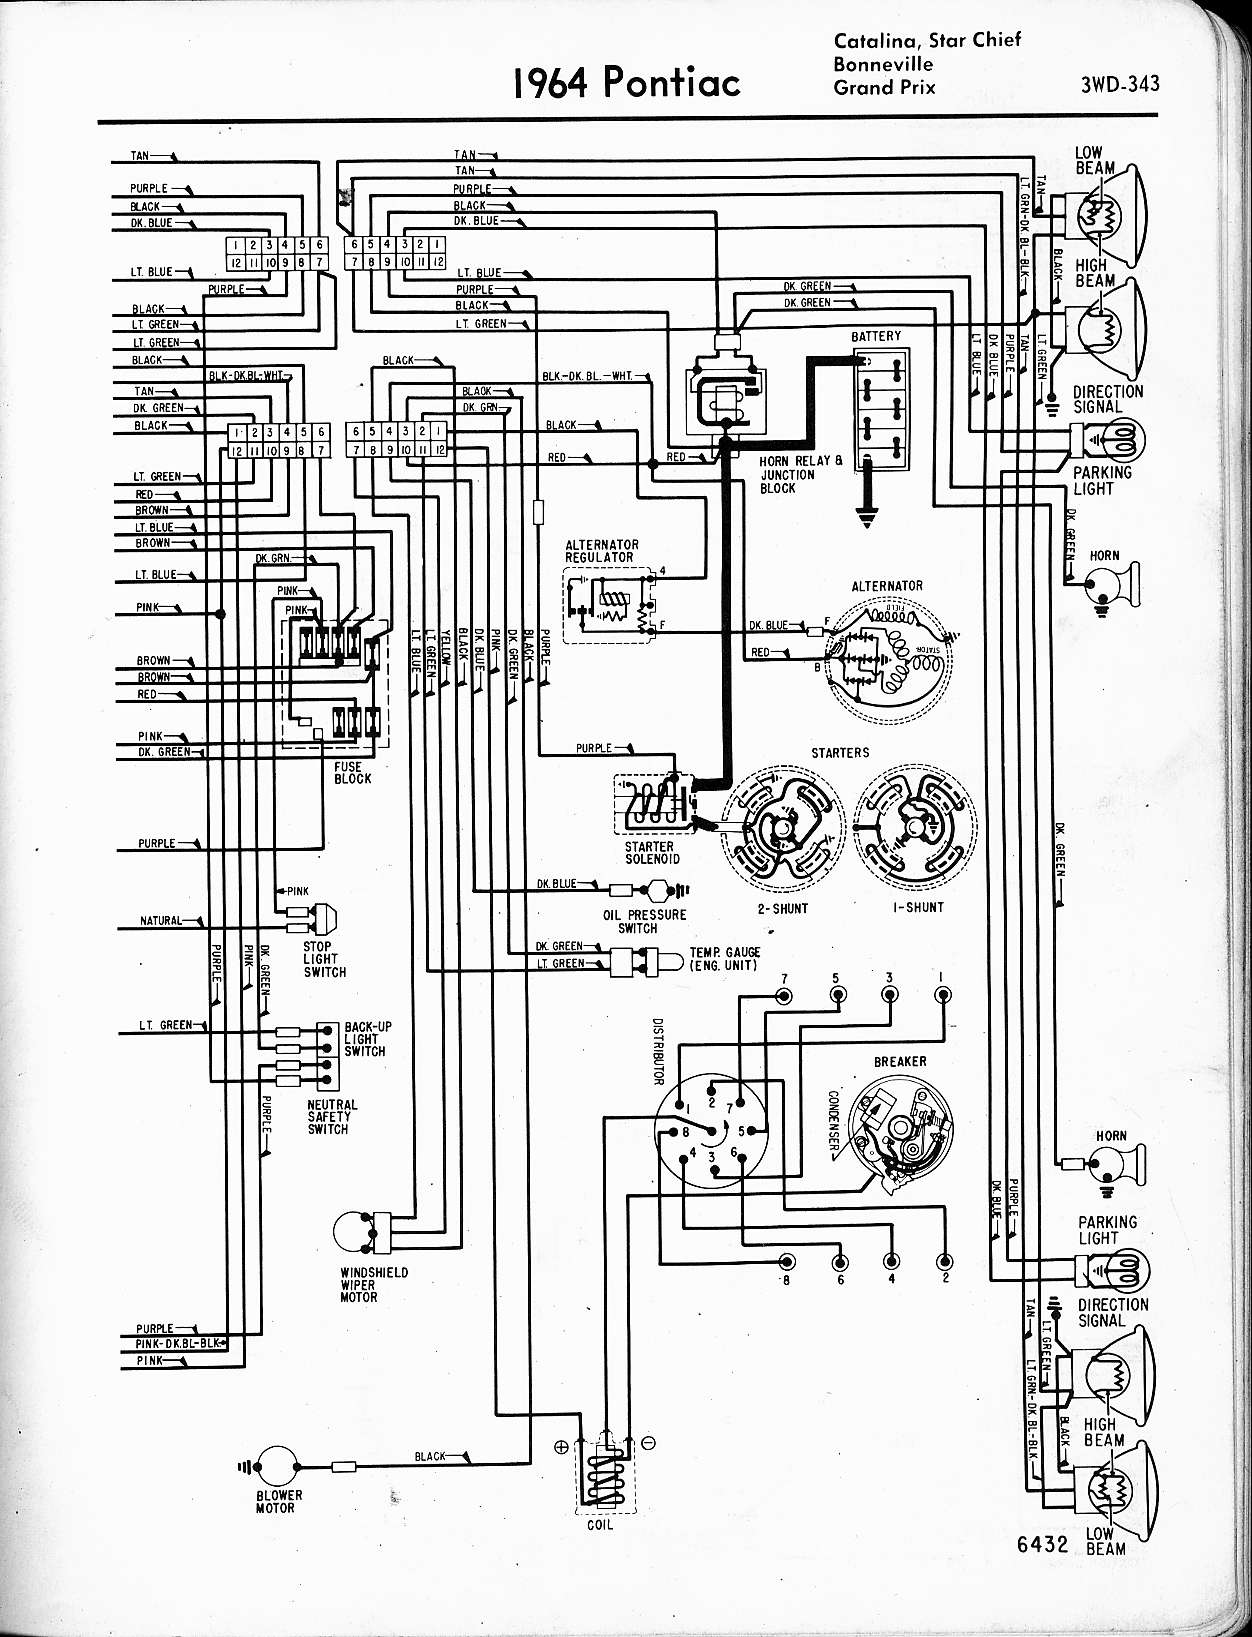 wallace racing wiring diagrams 67 gto wiring diagram for ignition on 1964  catalina, star chief